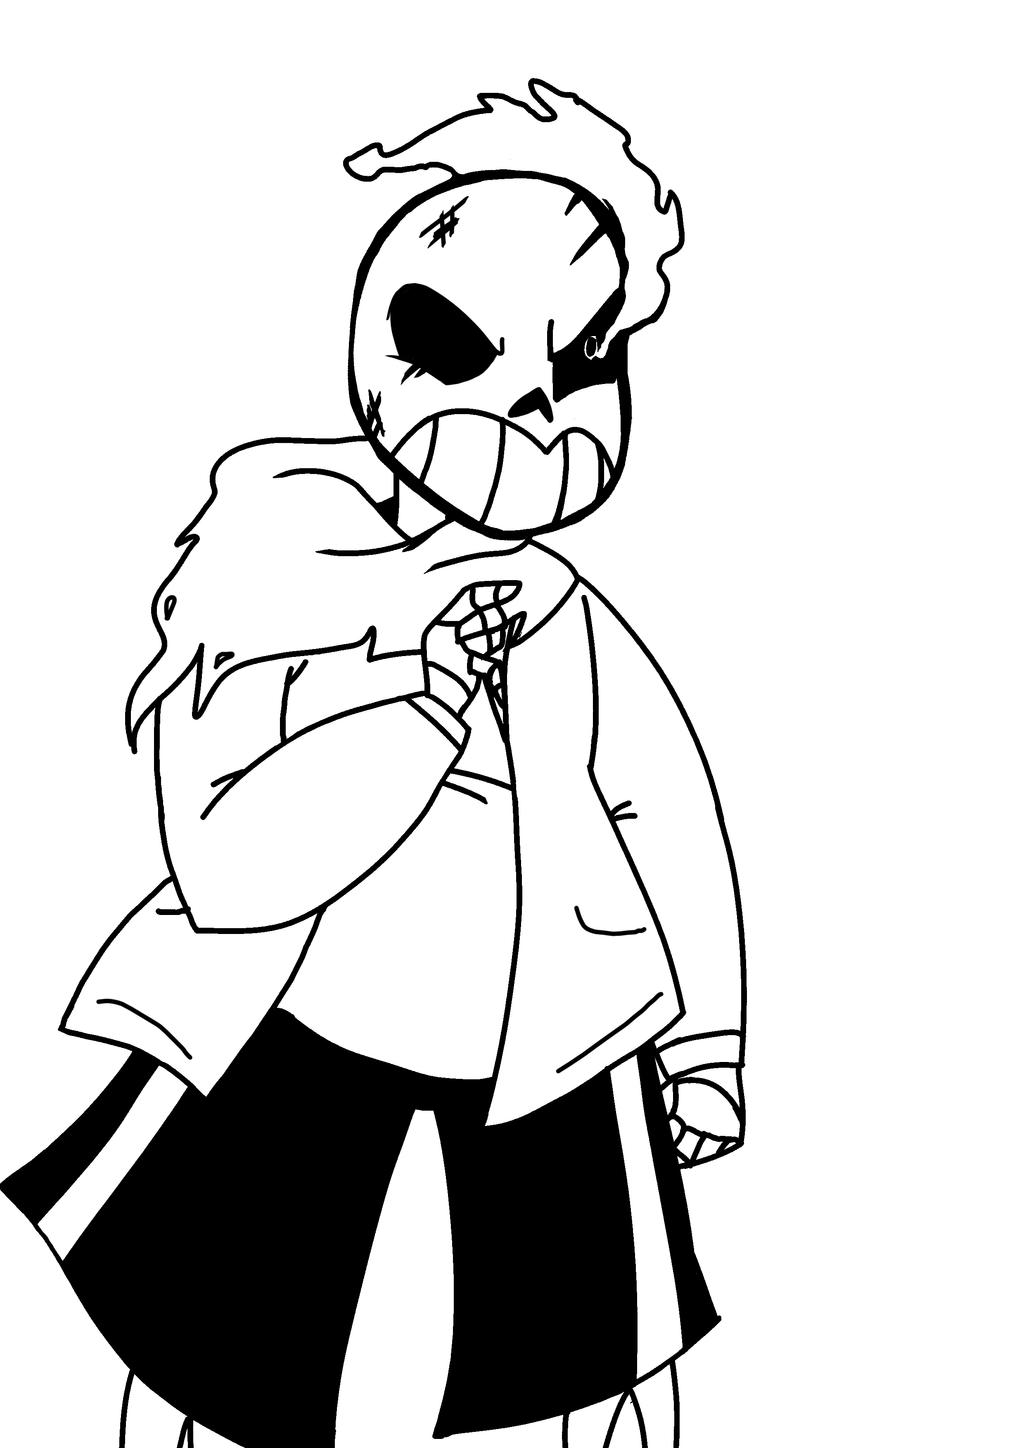 Undertale furious sans by rtnightmare on deviantart for Sans coloring page